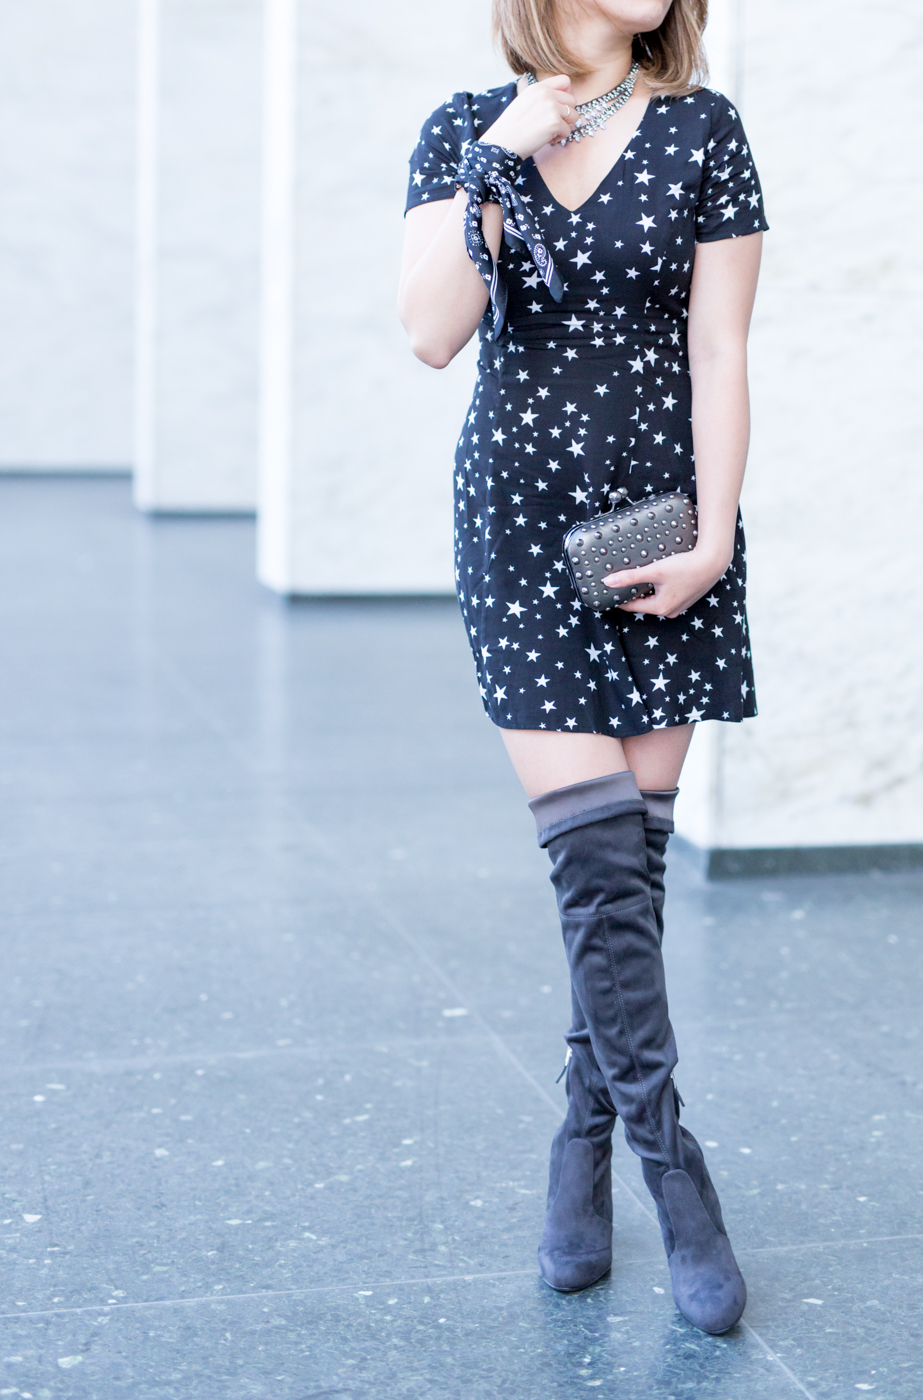 Star print dress with OTK boots | The Chic Diary